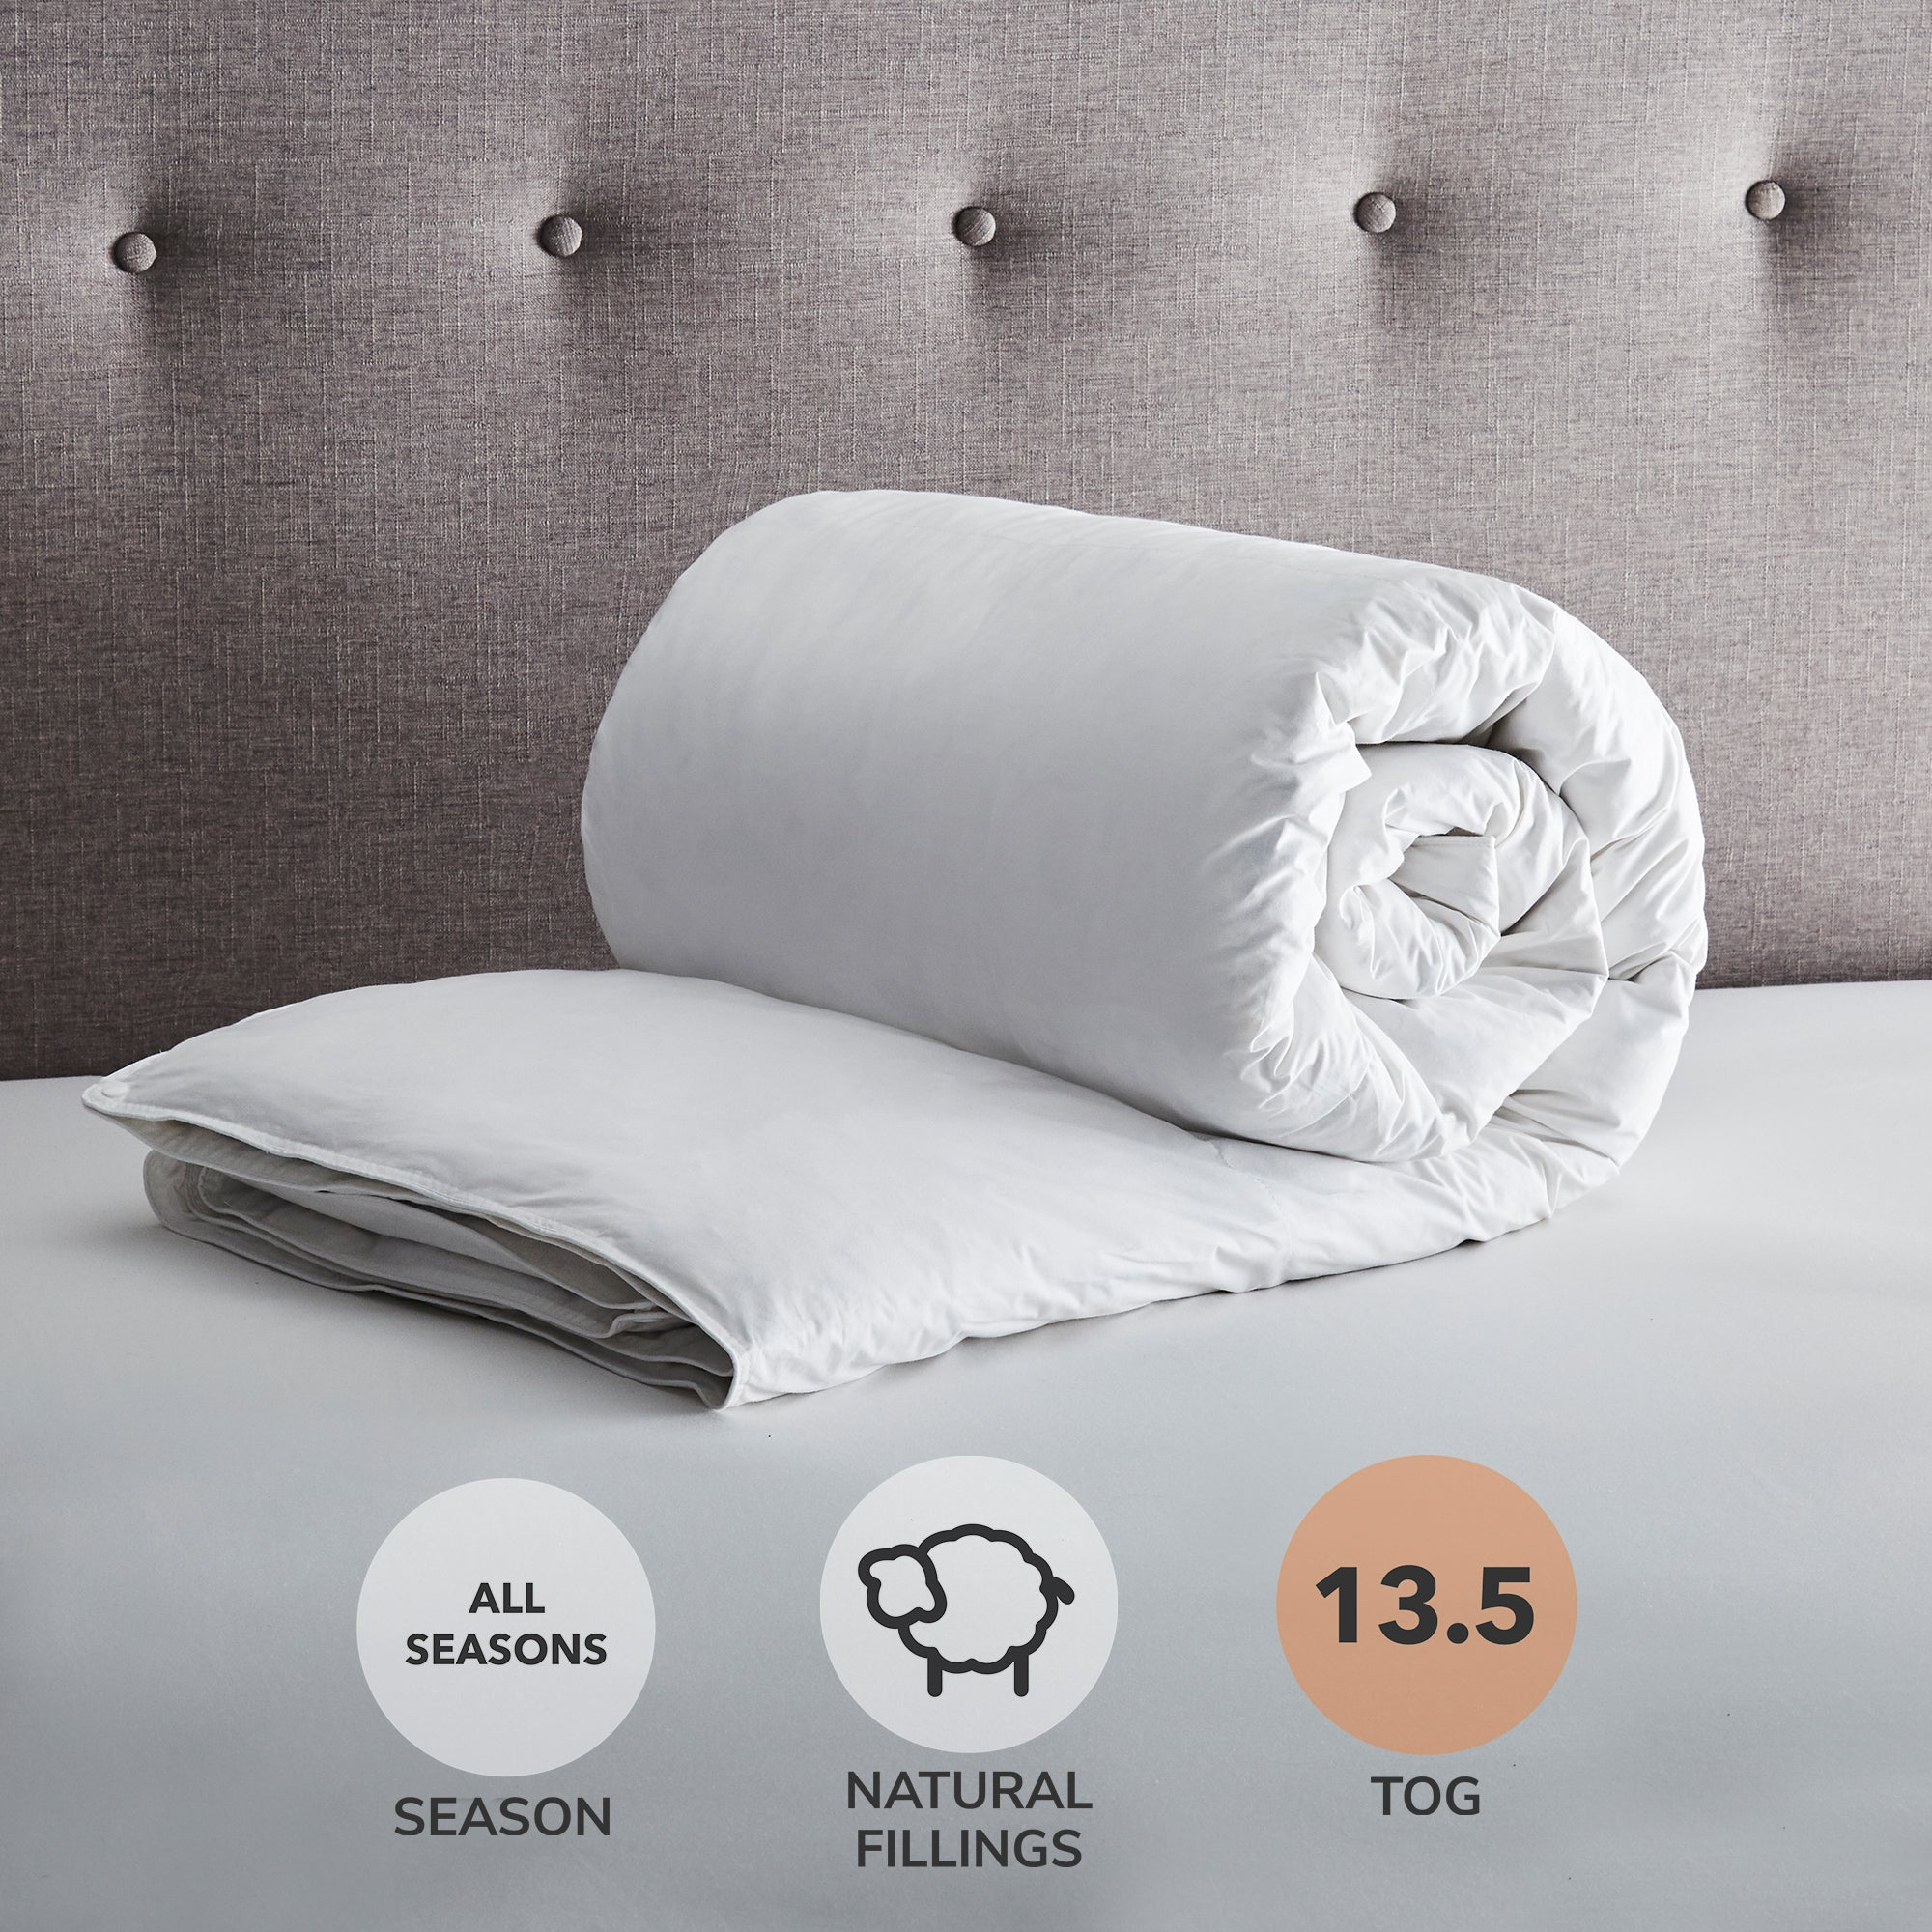 Hotel All Seasons 13.5 Tog White Goose Feather and Down Duvet